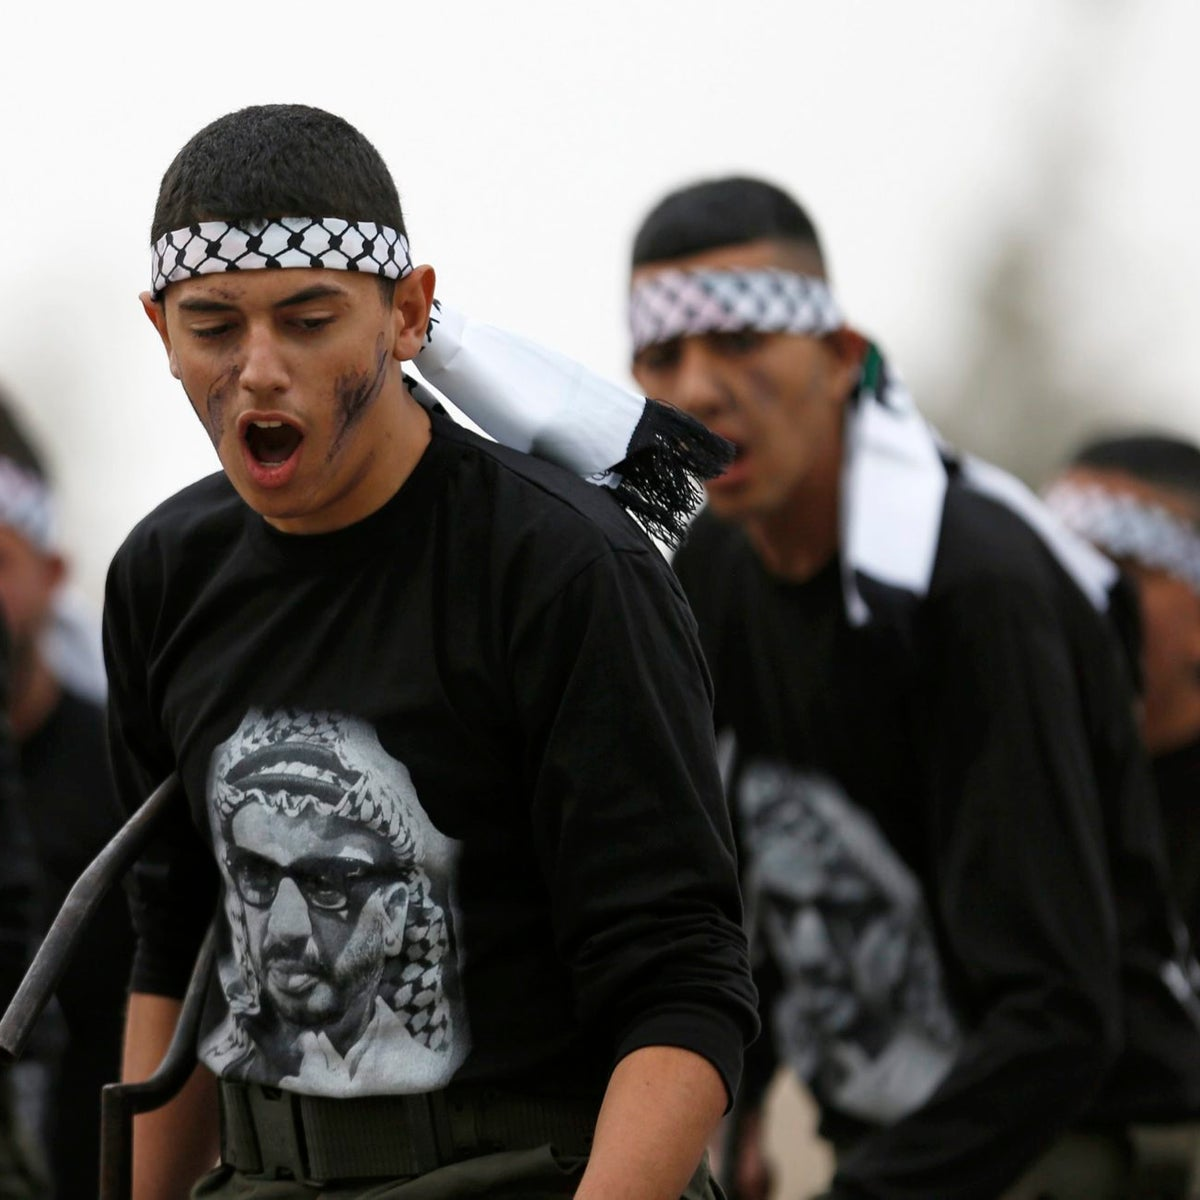 Palestinians take part in a training session at a 3-day youth camp with Palestinian security forces, in the West Bank city of Jericho, Wednesday, Jan. 25, 2017. The participants are wearing t-shirts with an image of the late Palestinian leader, Yasser Arafat.